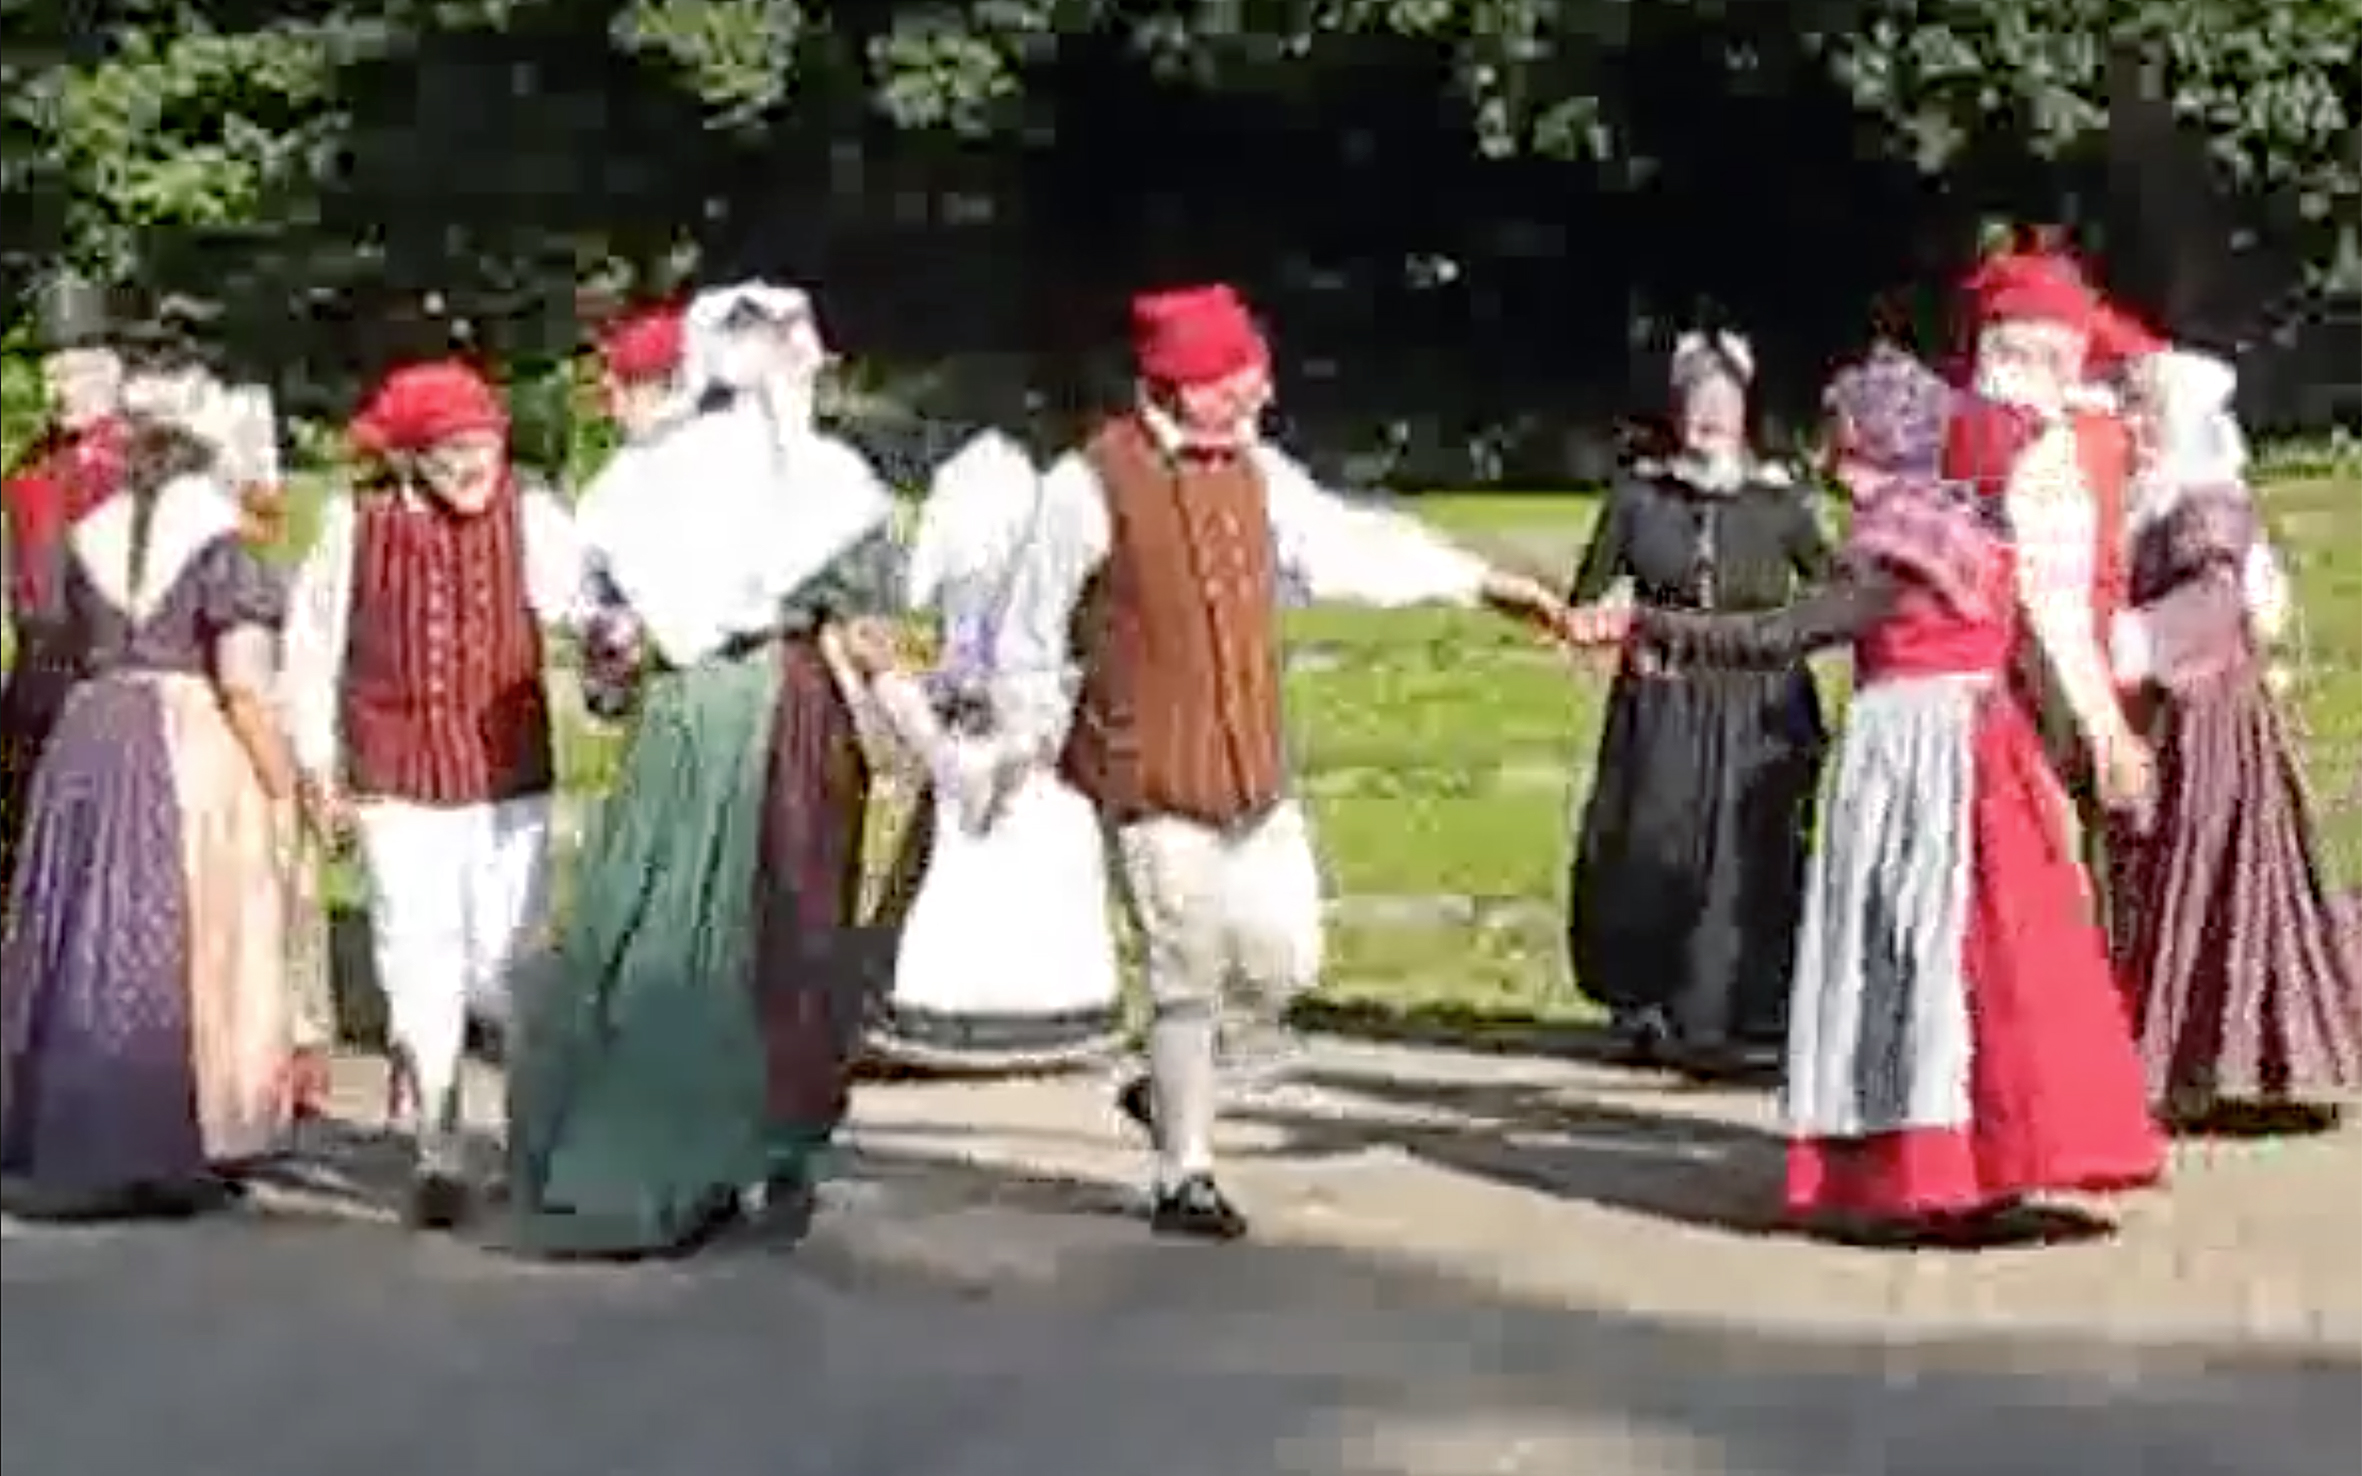 """889.Totur / Denmark - Totur is a folk dance from Vejle in Denmark. The name means """"two figures."""" It is danced by mixed couples in a circle. Basic steps include walking, two-step, grand right and left."""